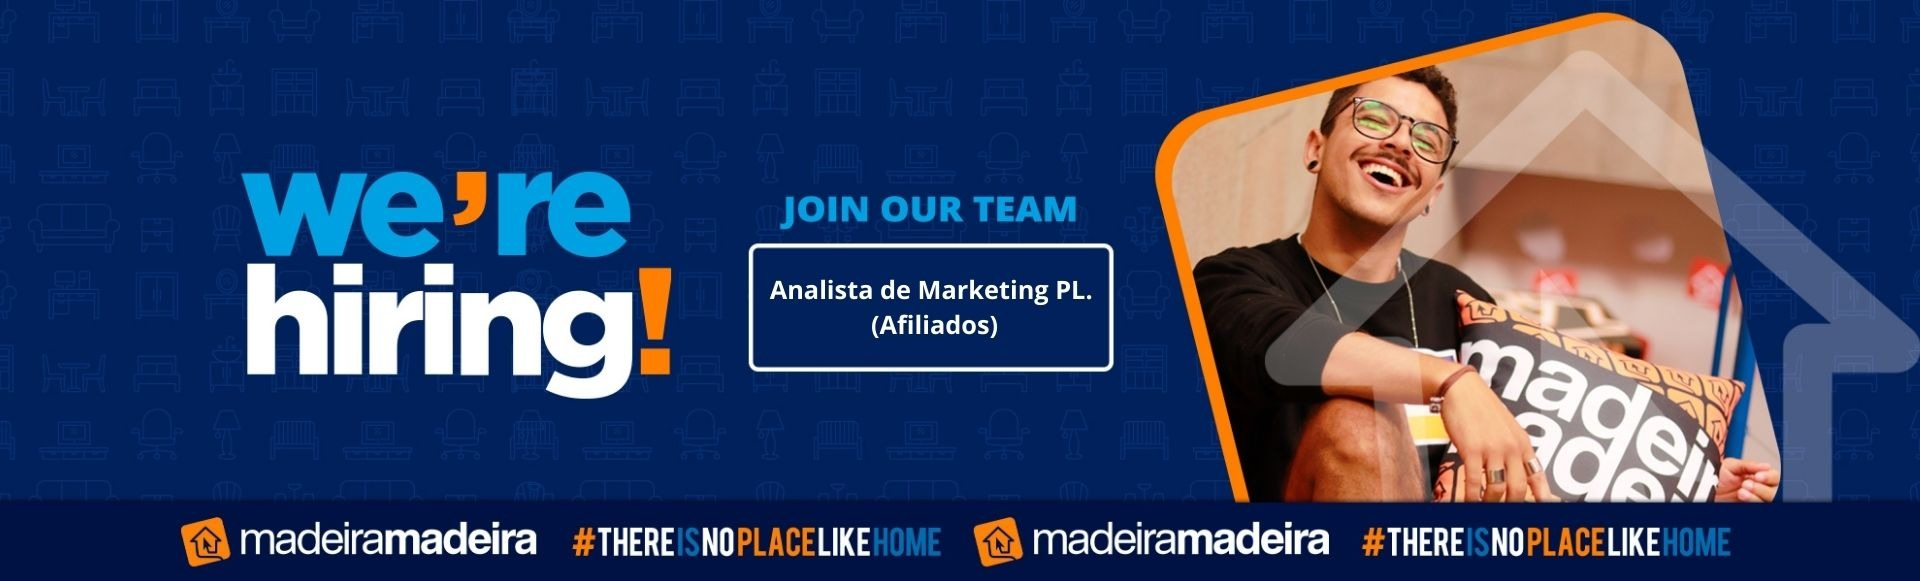 Analista de Marketing PL (Afiliados)